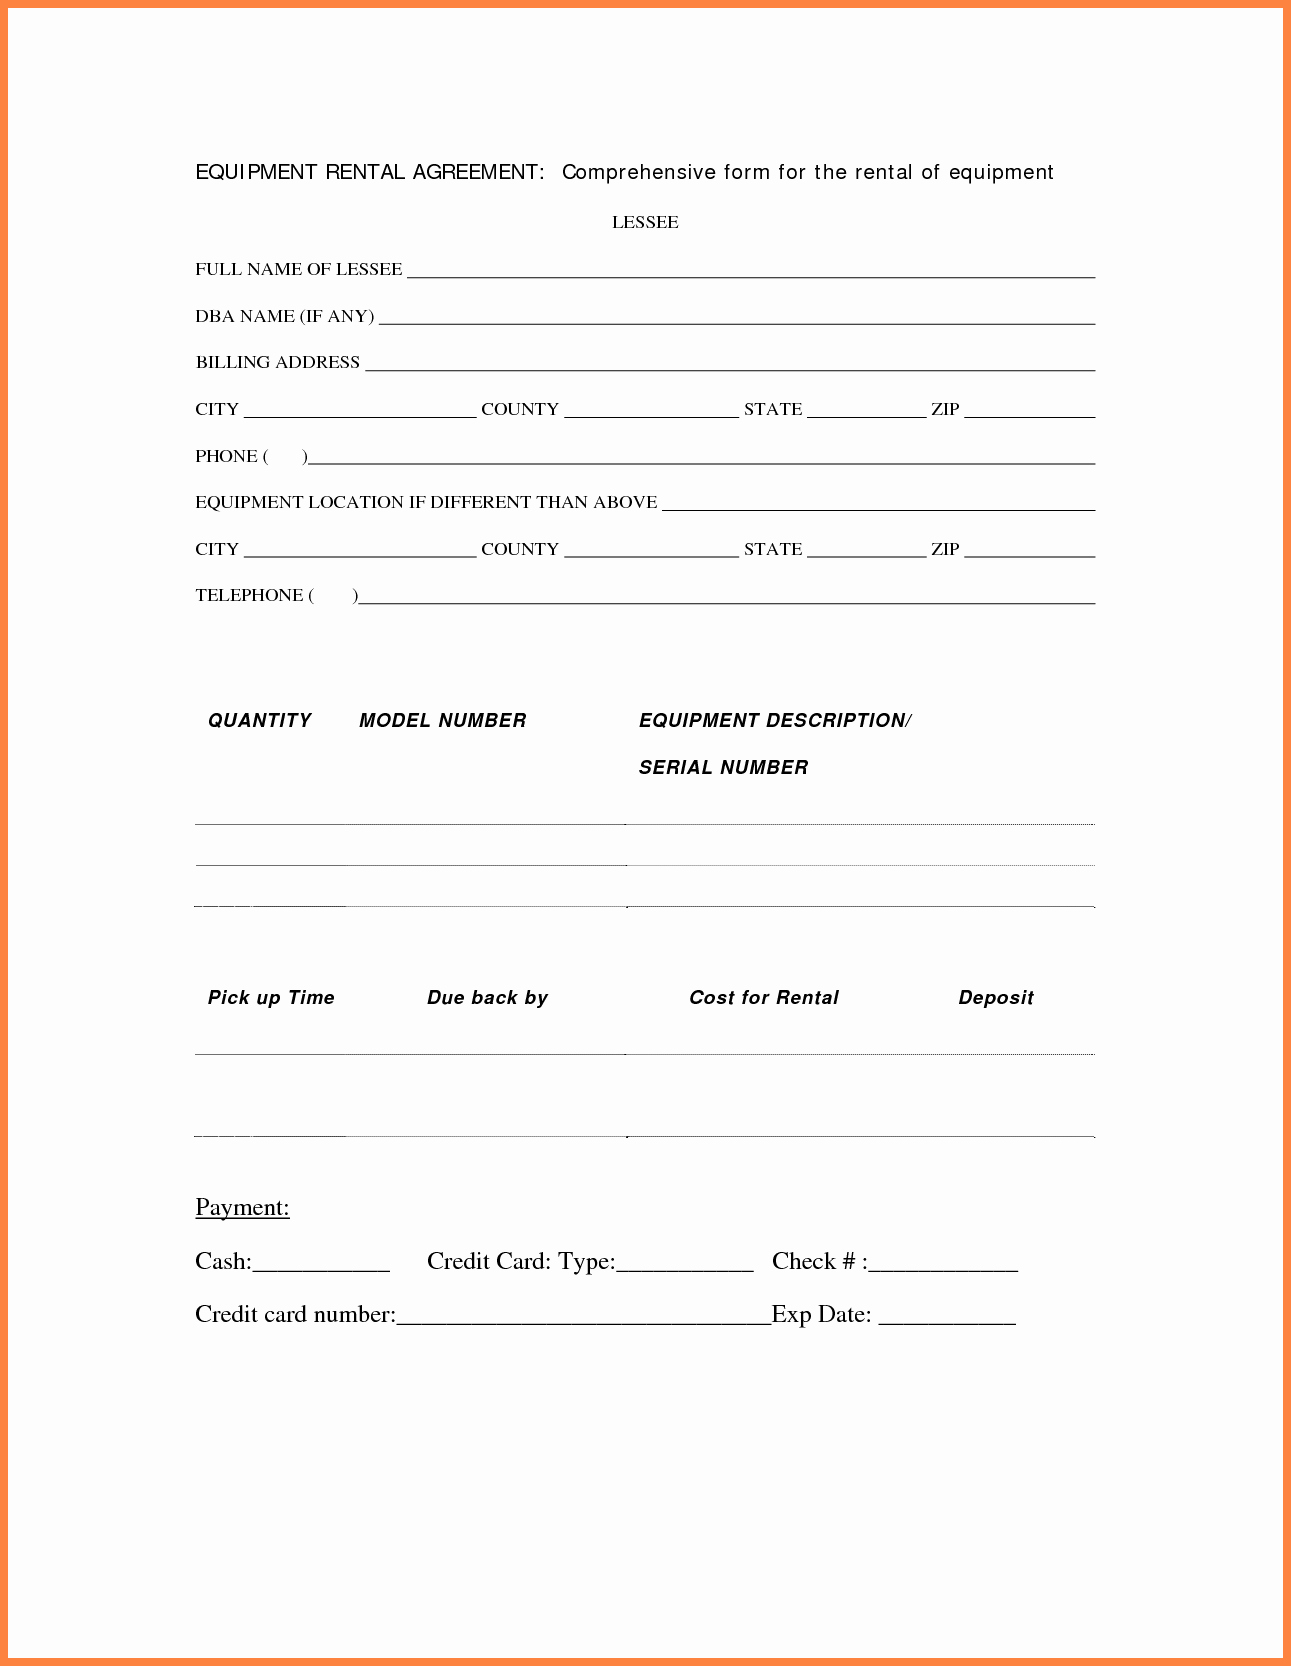 Equipment Rental Agreement Template Free New 9 Equipment Rental Lease Agreement Template